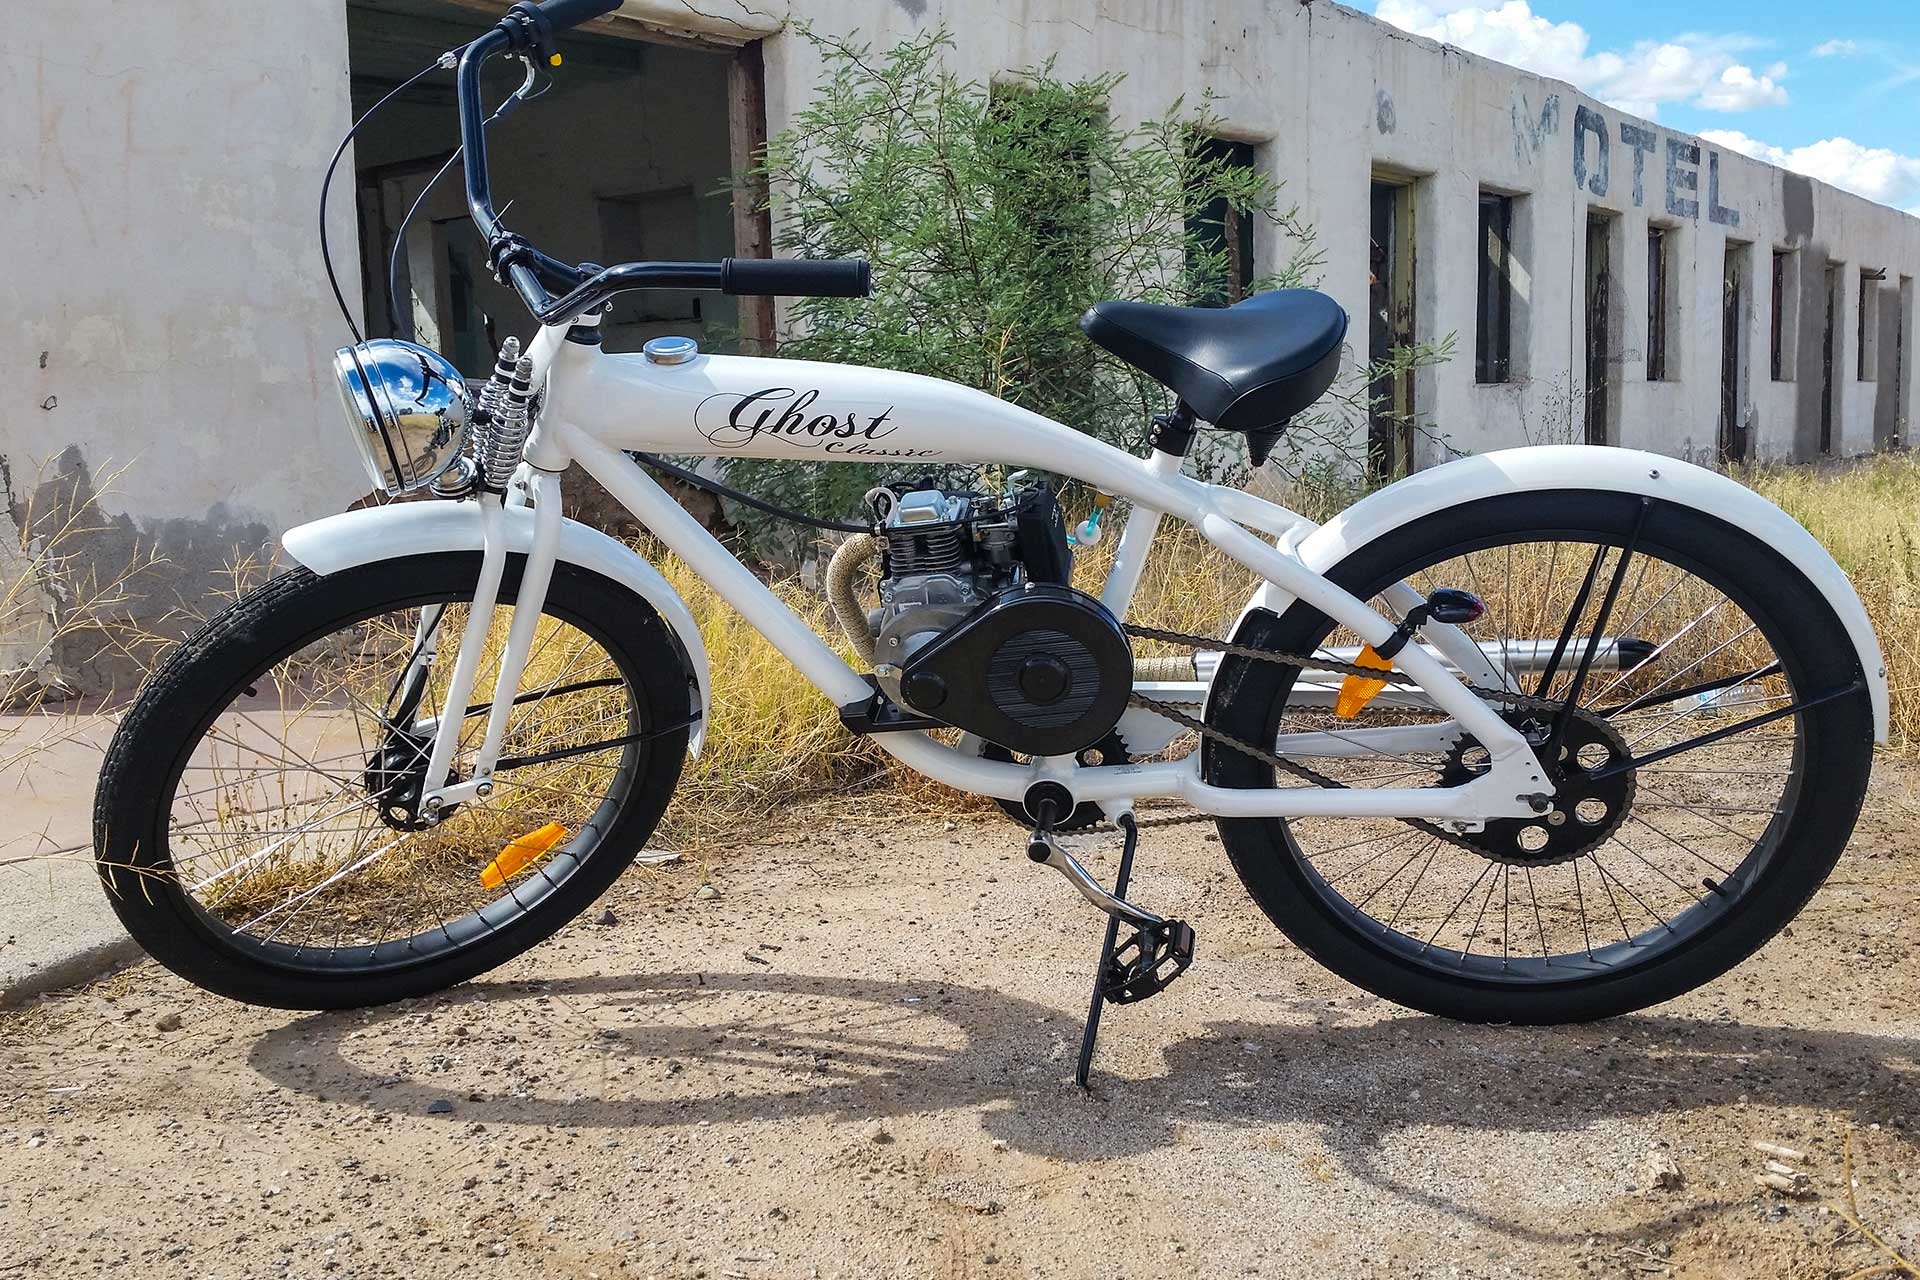 Motorized bicycles gas powered electric bikes Best frame for motorized bicycle